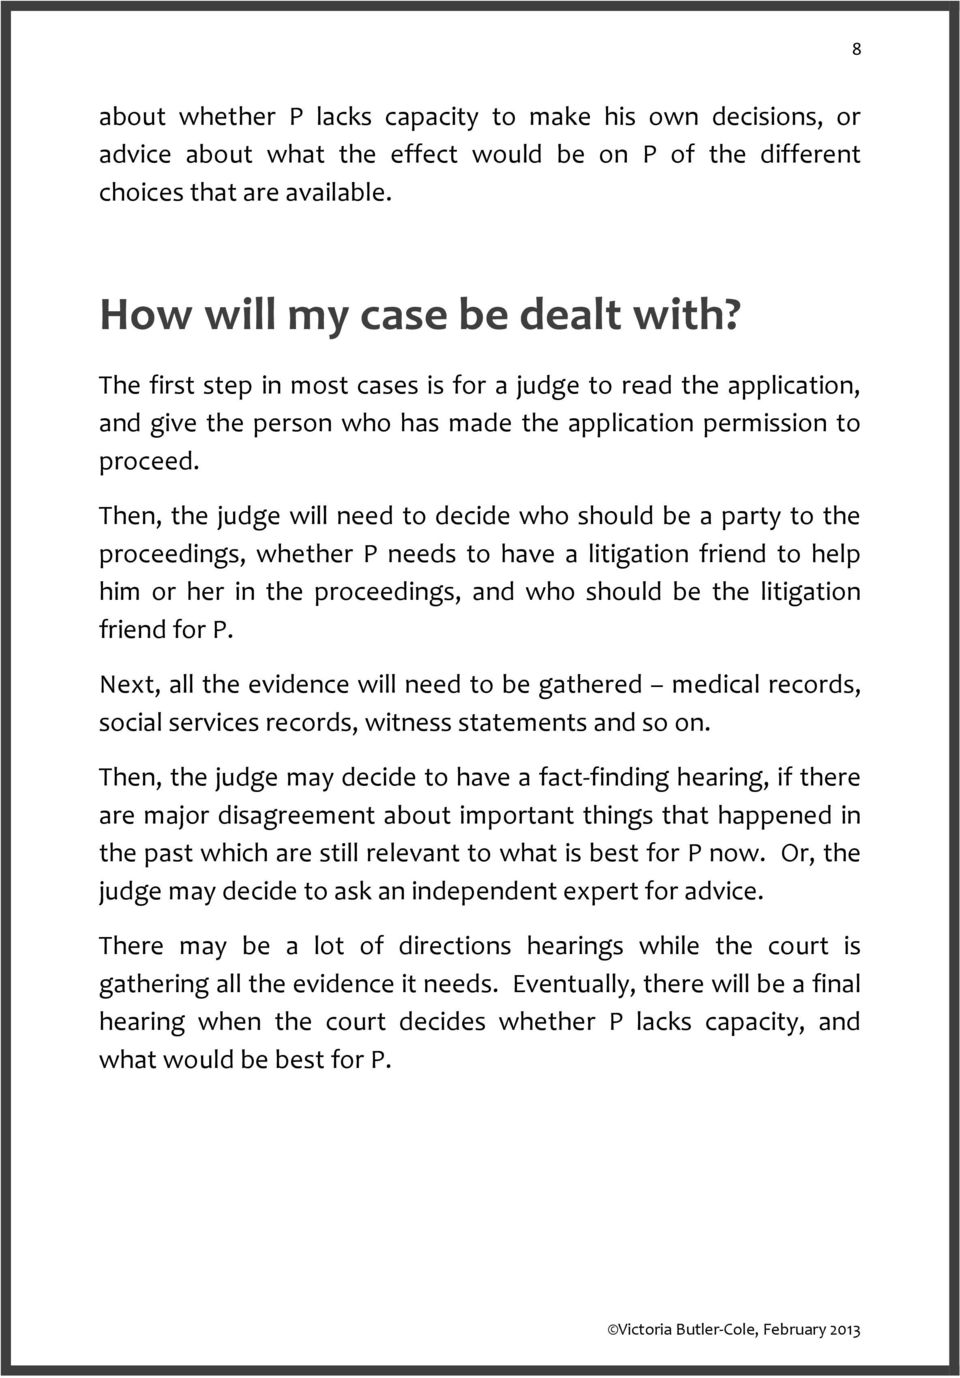 Then, the judge will need to decide who should be a party to the proceedings, whether P needs to have a litigation friend to help him or her in the proceedings, and who should be the litigation